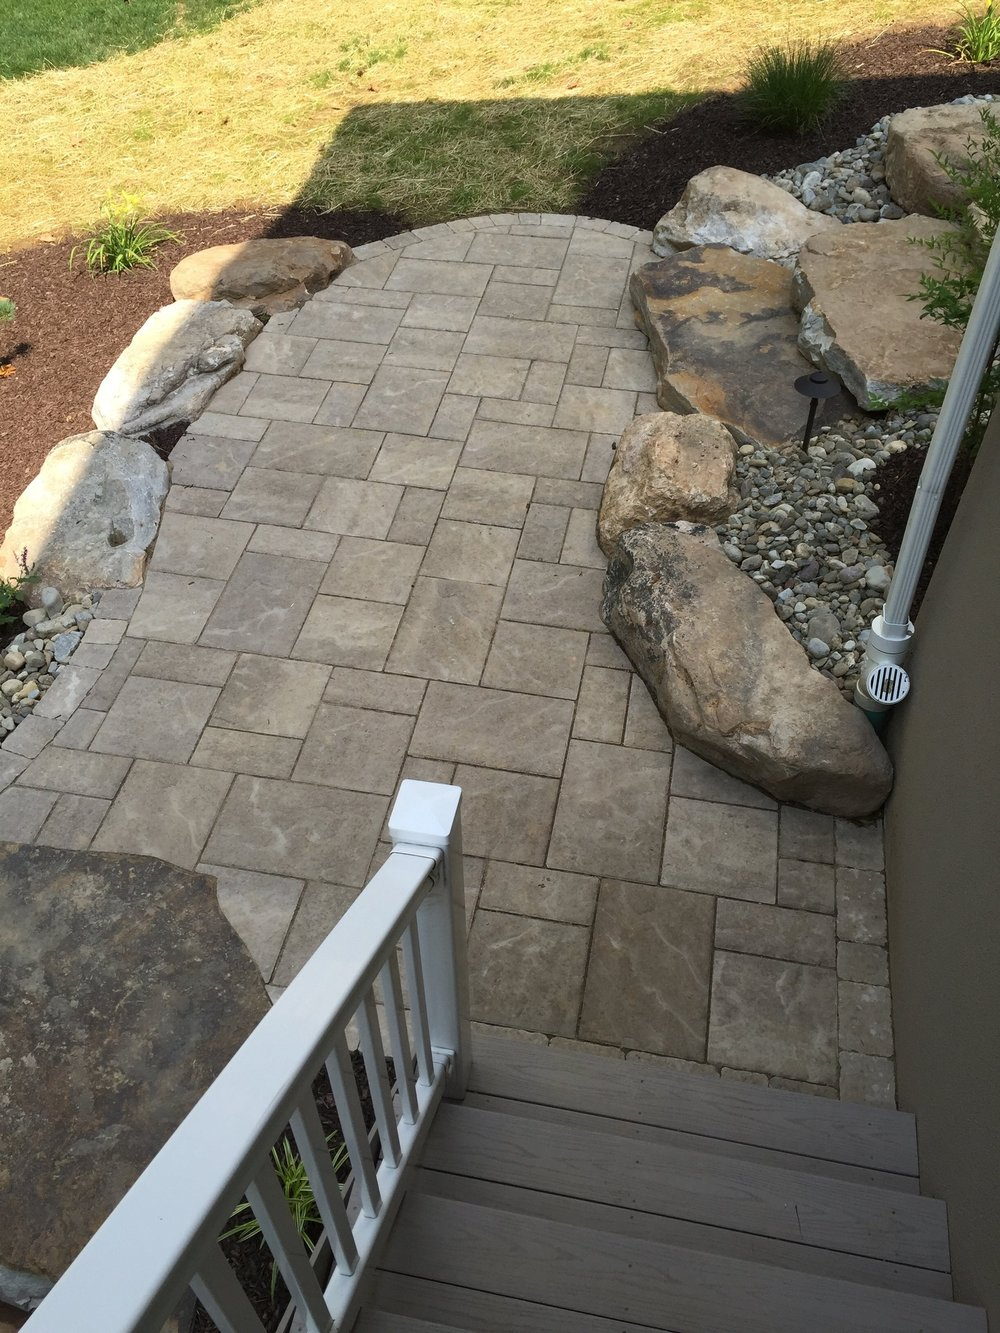 Top landscape design with a patio in Lebanon, PA